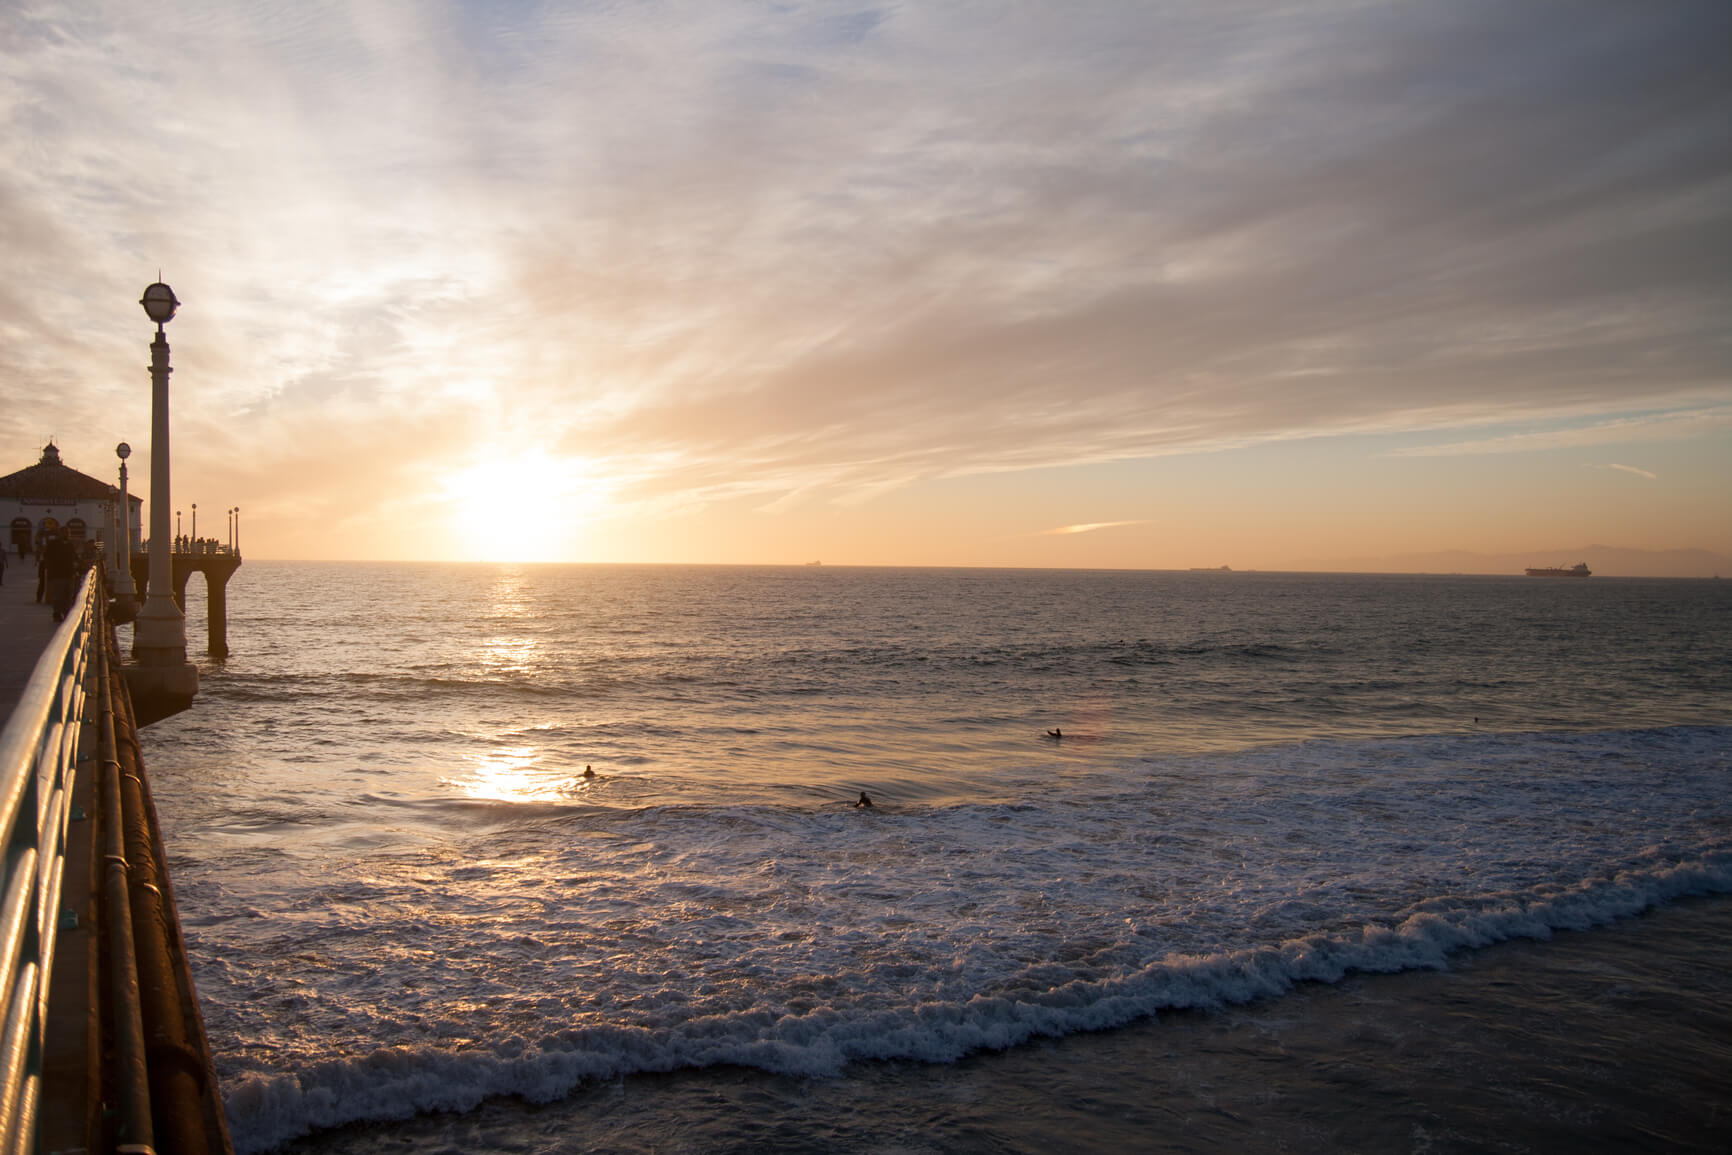 SUMMER: Non-stop from Austin, Texas to Long Beach, California (& vice versa) for only $77 roundtrip (Jul-Oct dates)